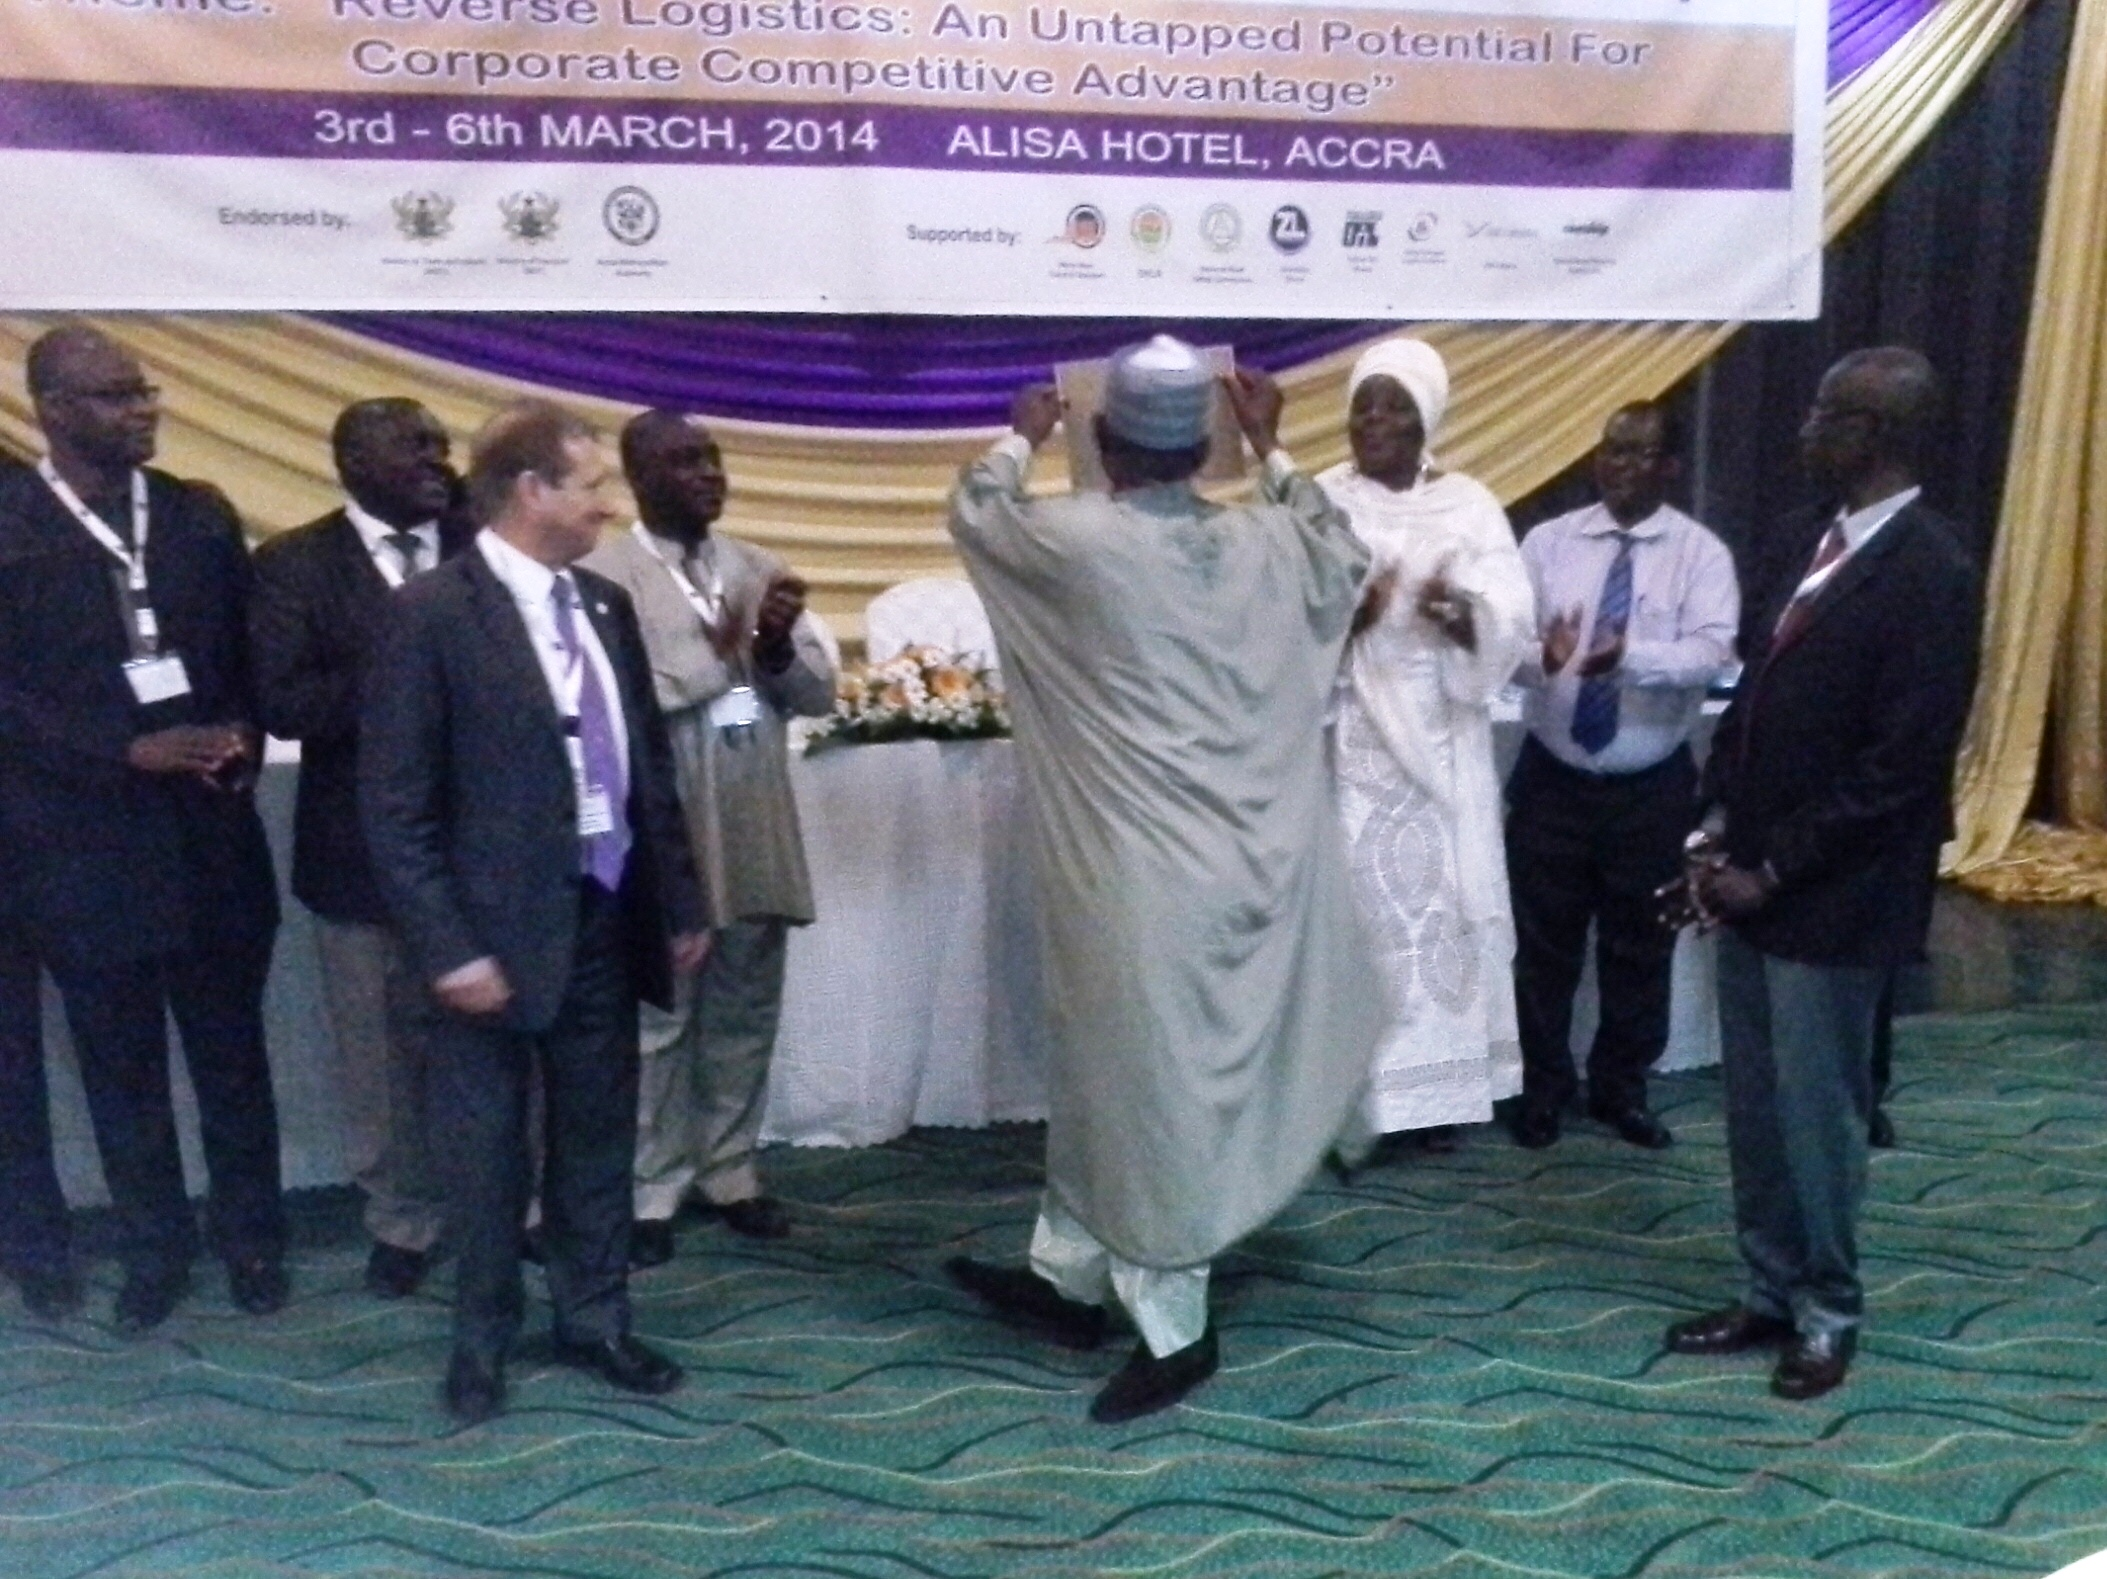 maj-gen-ut-usman-rtd-natl-president-ciltn-displaying-the-territorial-organization-certificate-to-the-delegates-the-high-table